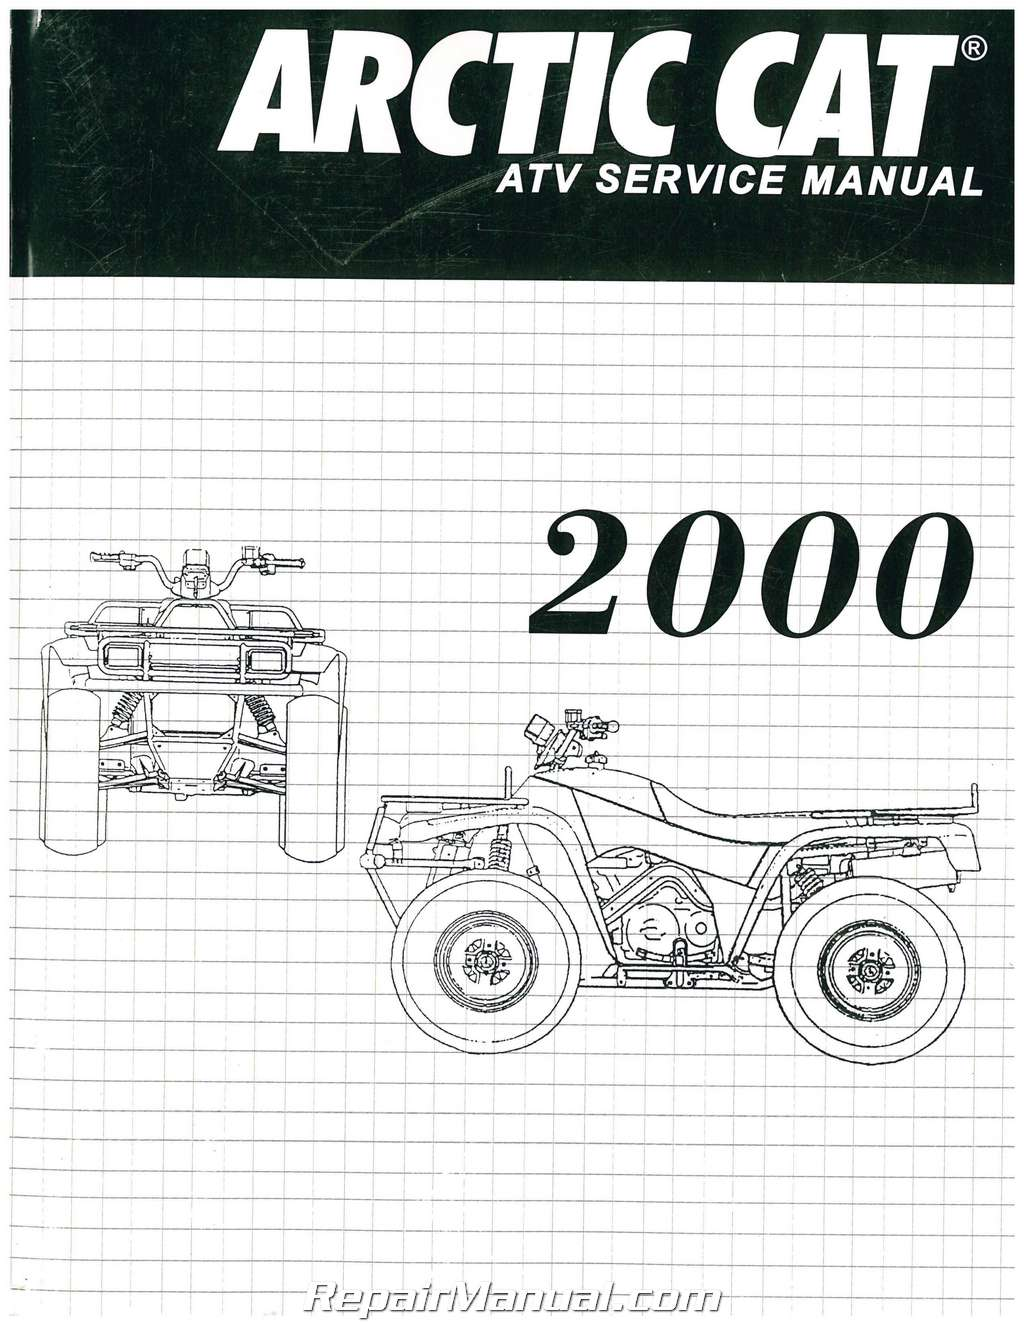 hight resolution of wiring diagram 1998 arctic cat 500 atv wiring resources rh ukgm org 2003 arctic cat 300 4x4 wiring diagram 2000 arctic cat 300 4x4 wiring diagram